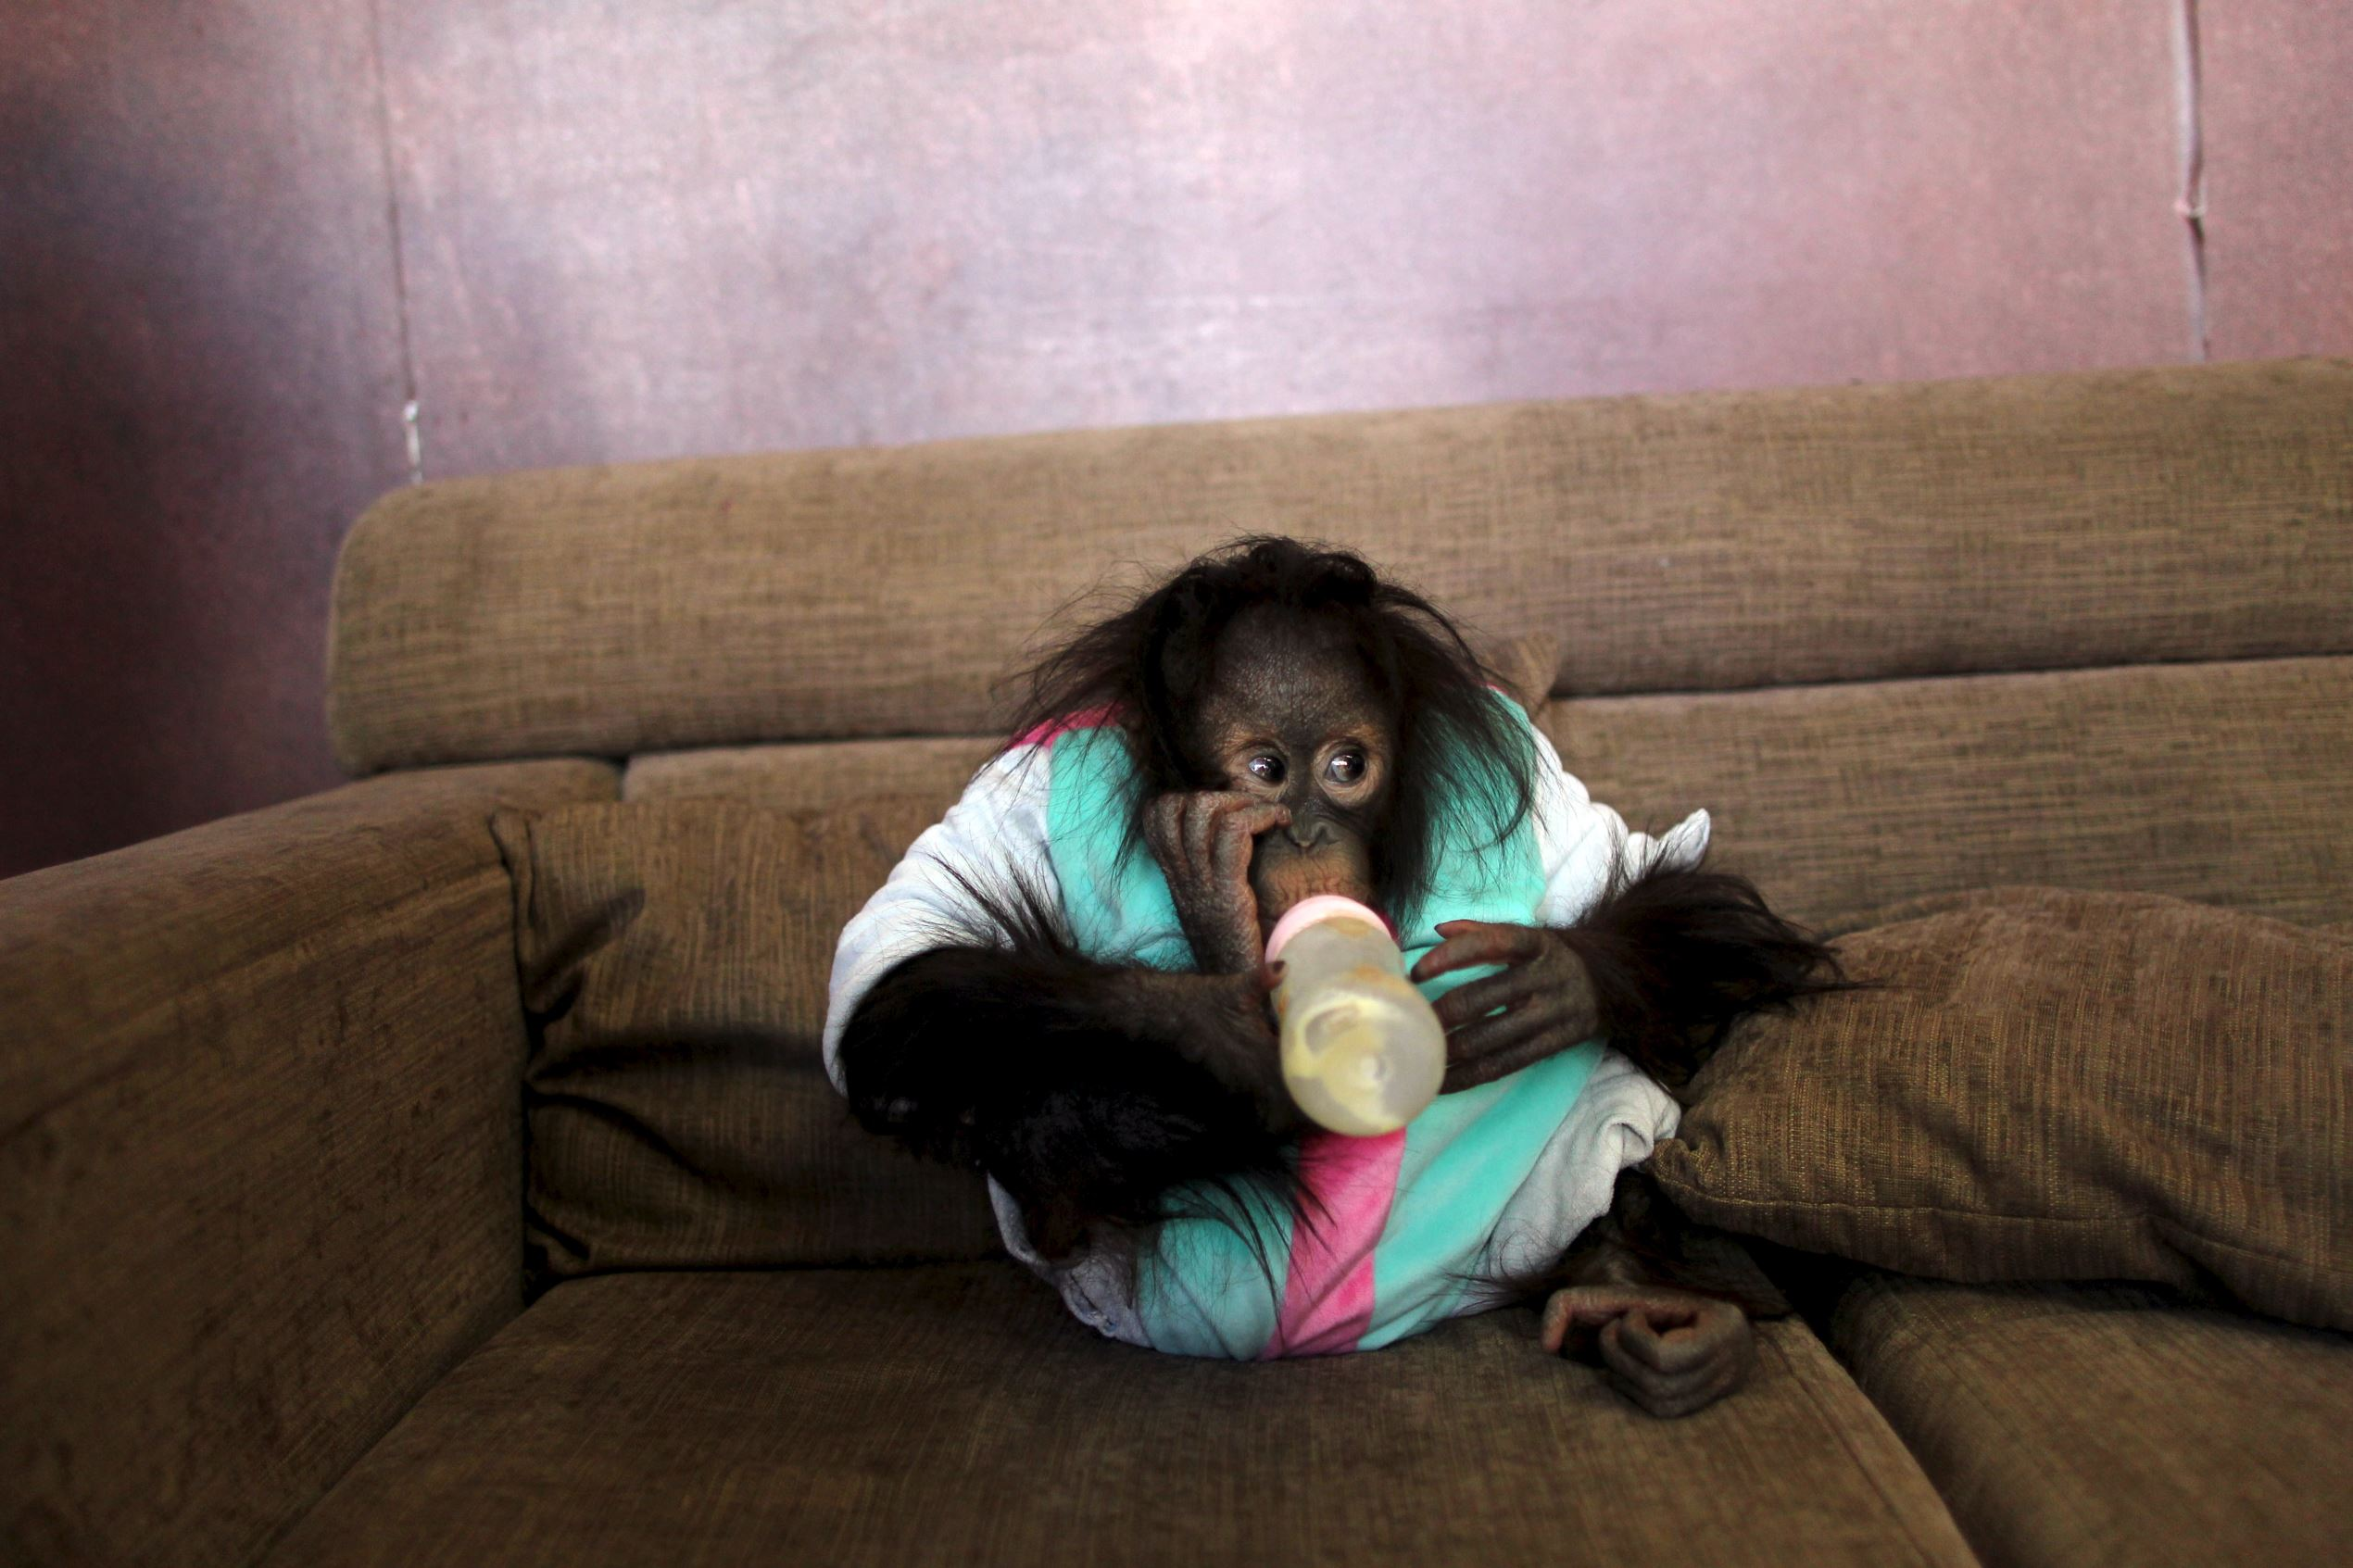 Слайд 67 из 67: An orangutan drinks milk on a couch at a studio, in Kunming, Yunnan province, February 14, 2016. Picture taken February 14, 2016.